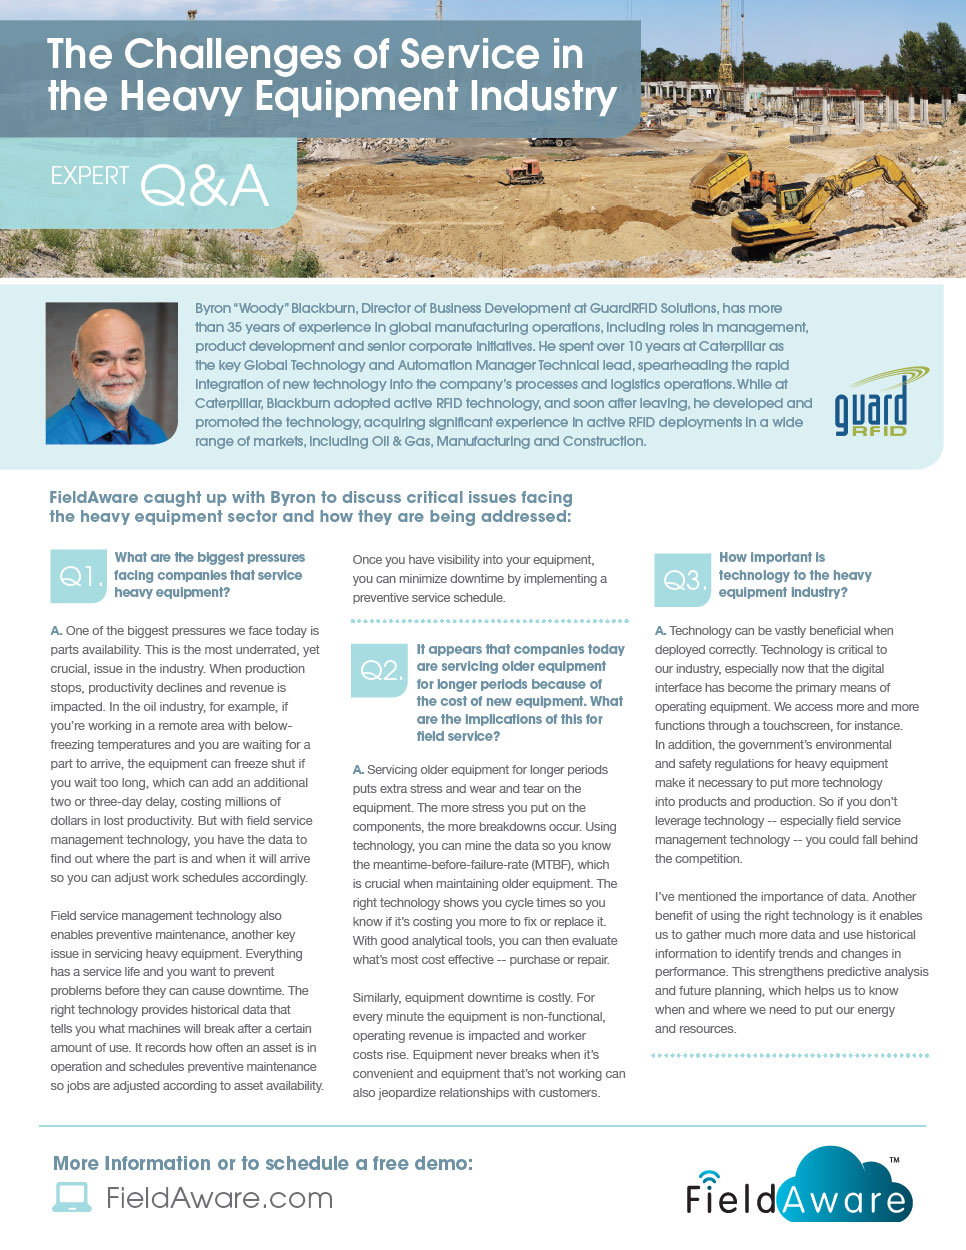 The Challenges Of Service In The Heavy Equipment Industry White Paper